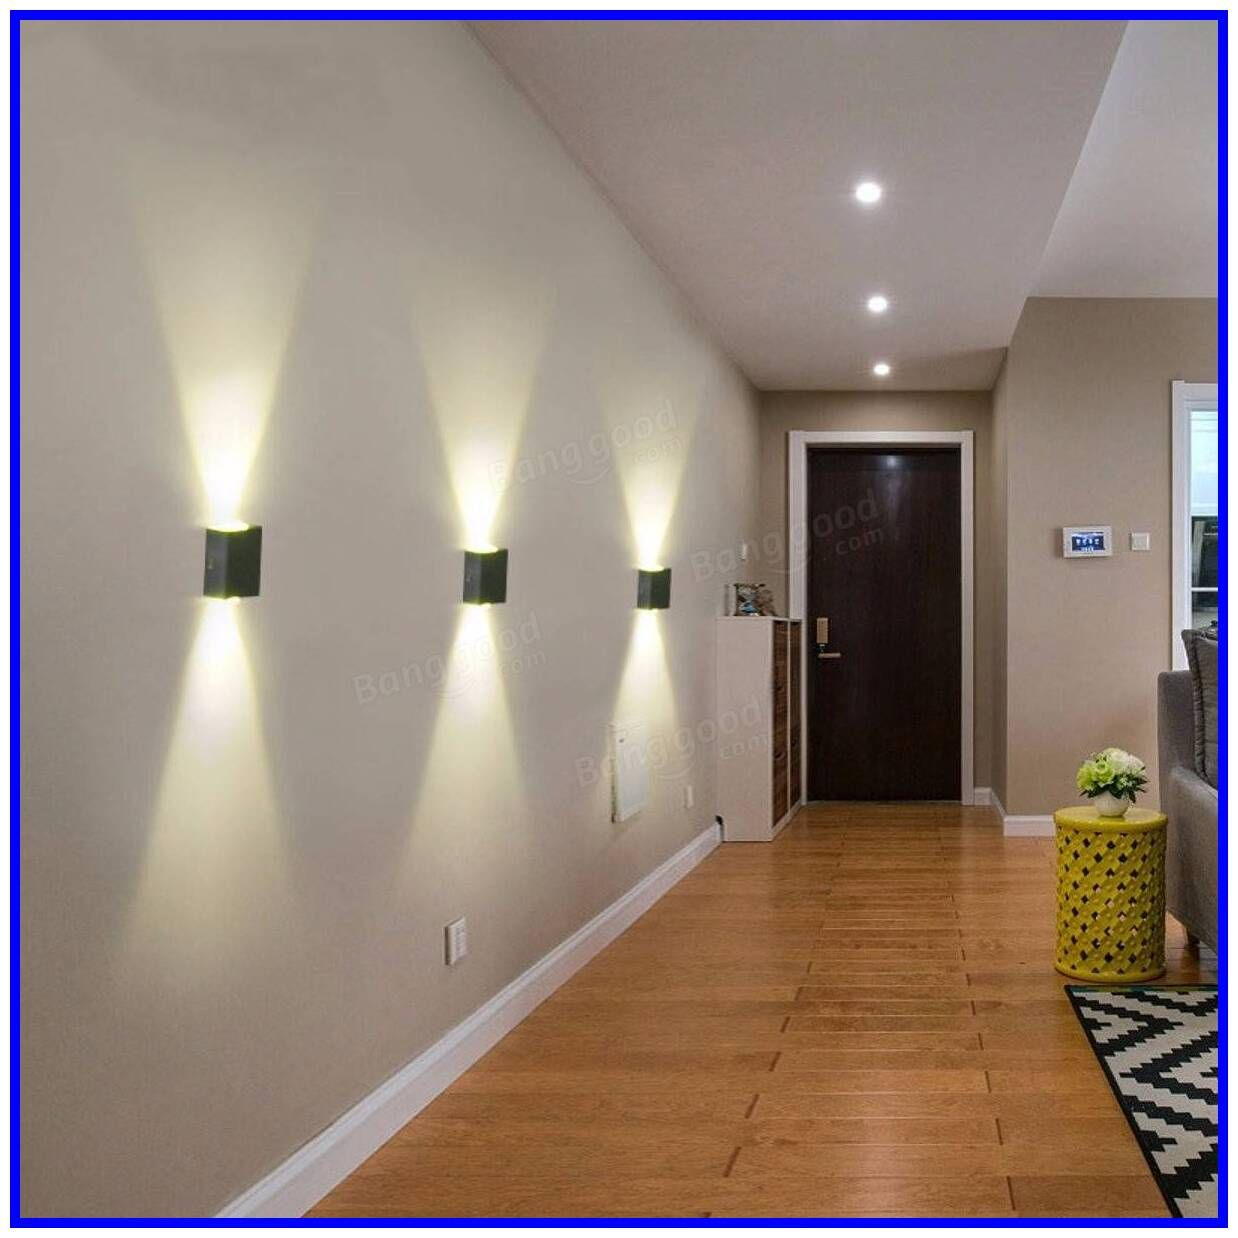 44 09 Modern 3w Led Wall Sconce Light Fixture Indoor Hallway Up